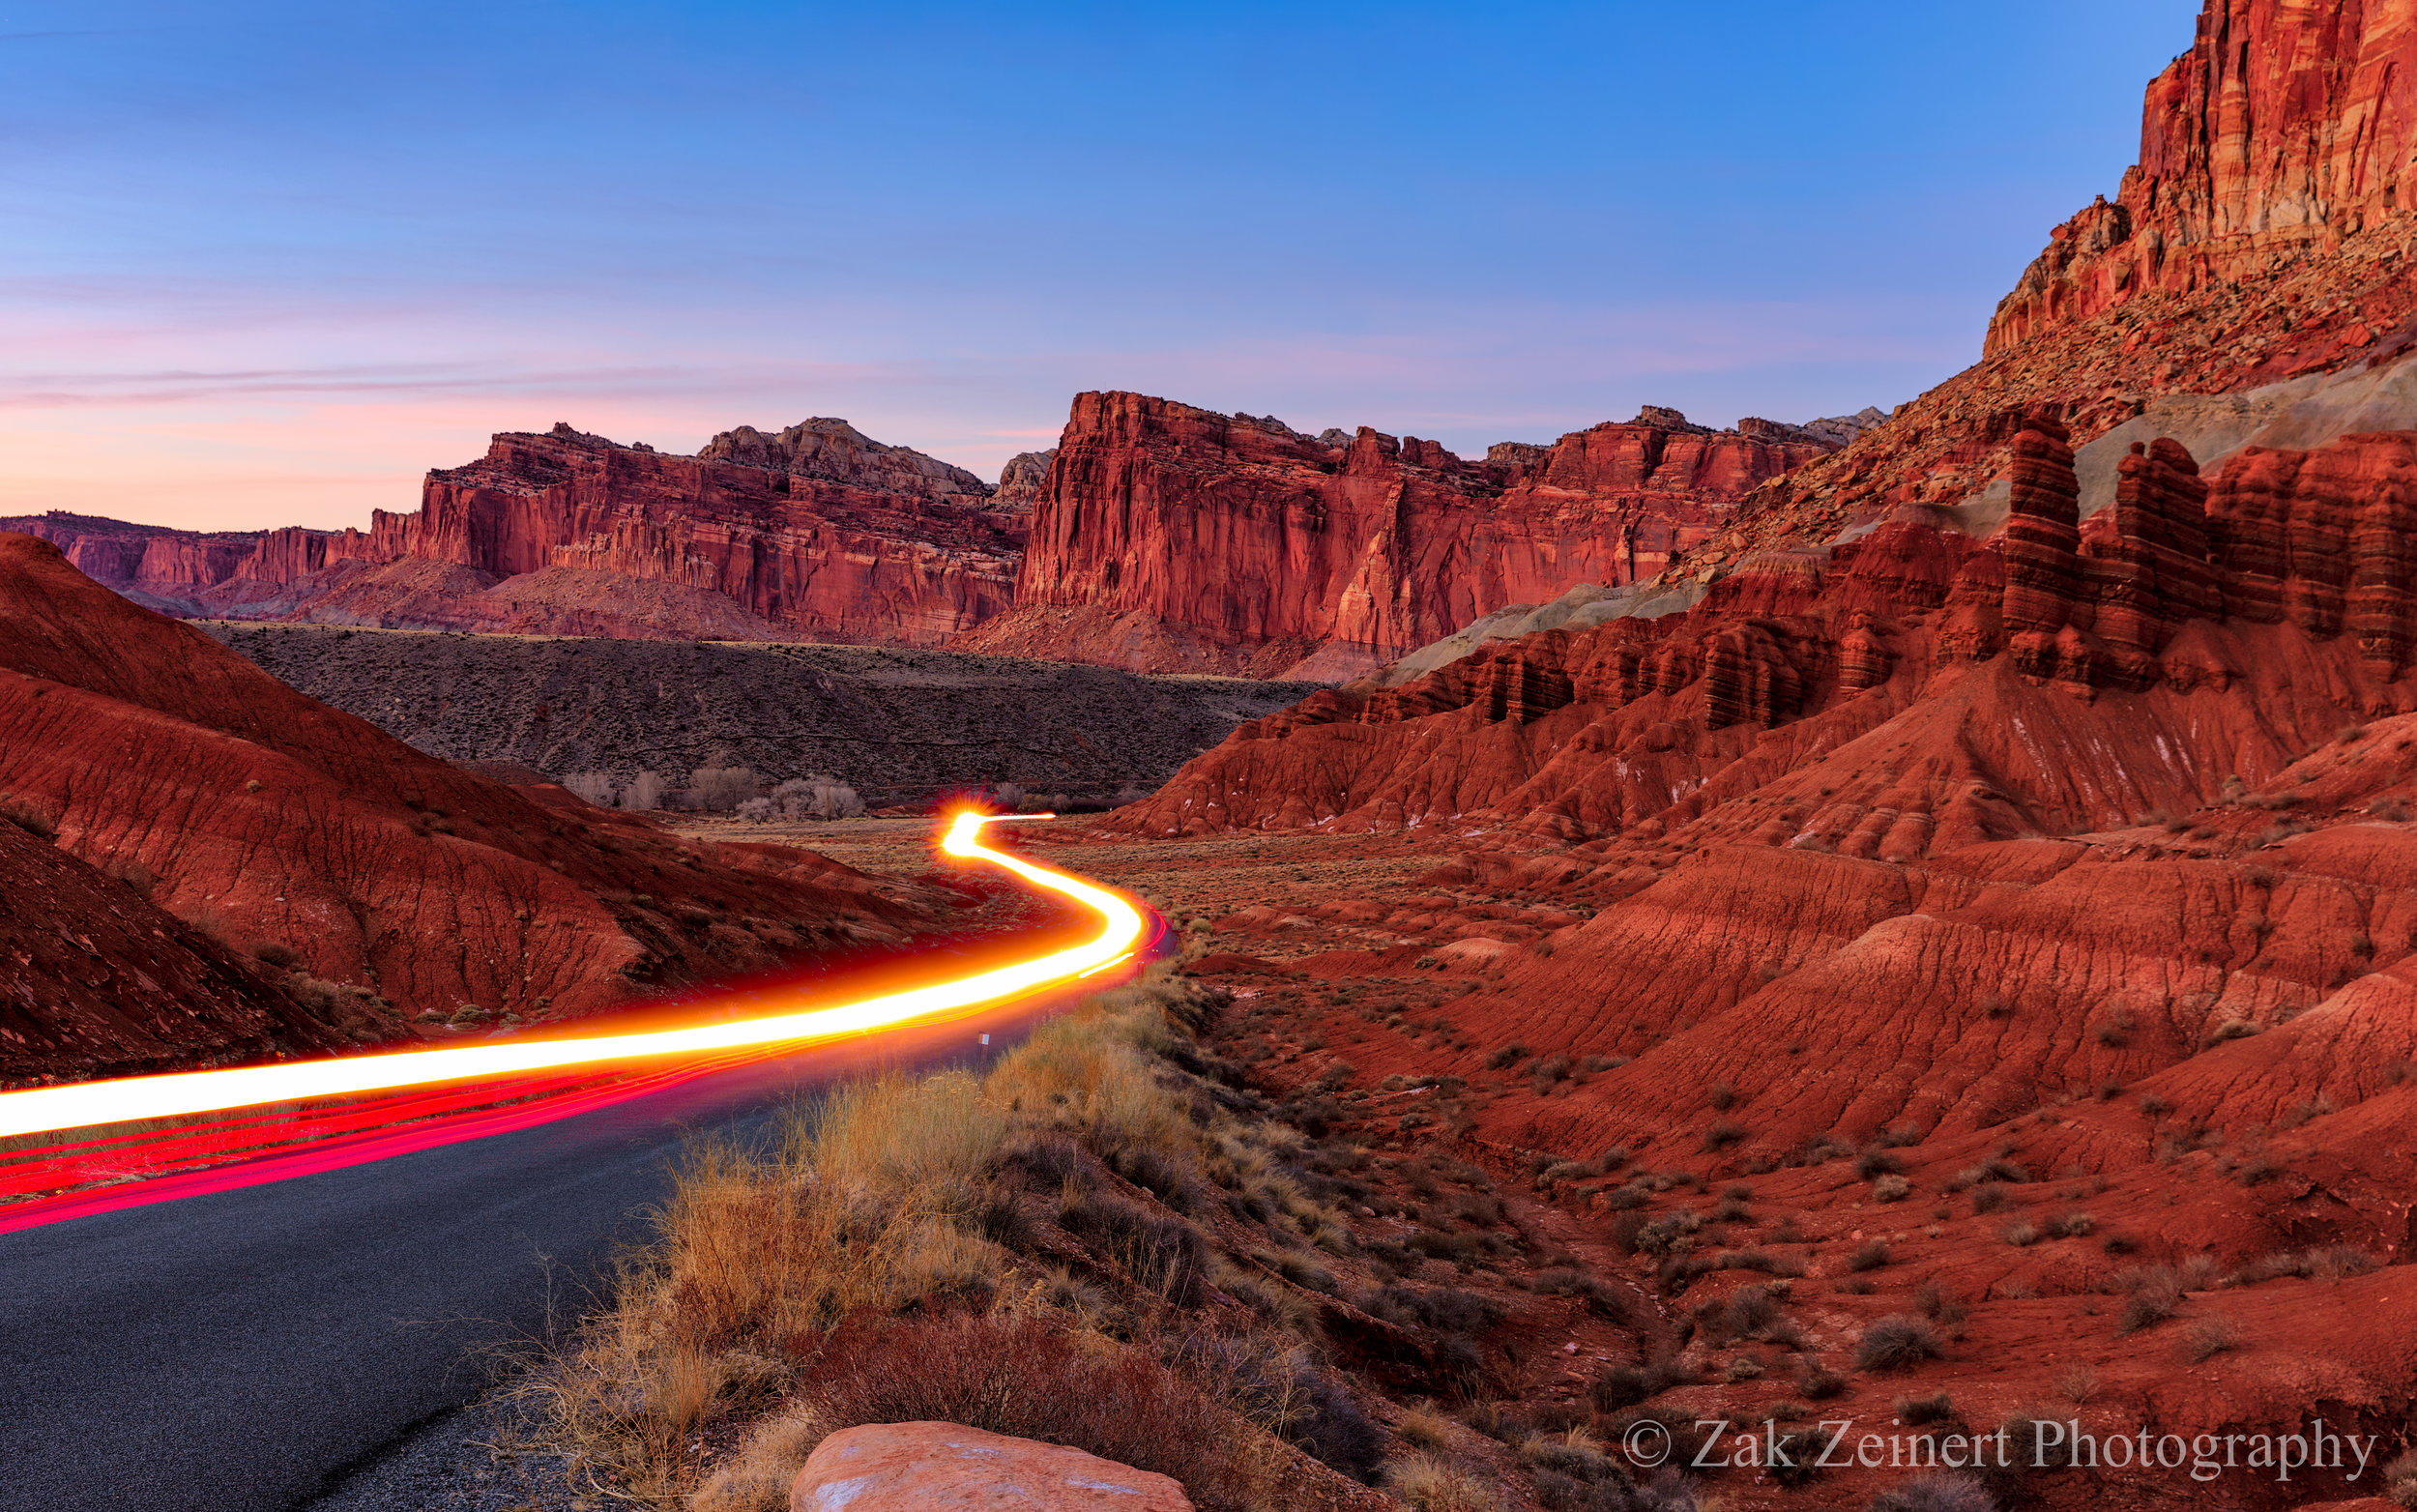 Final shot of Capitol Reef with light trails added in